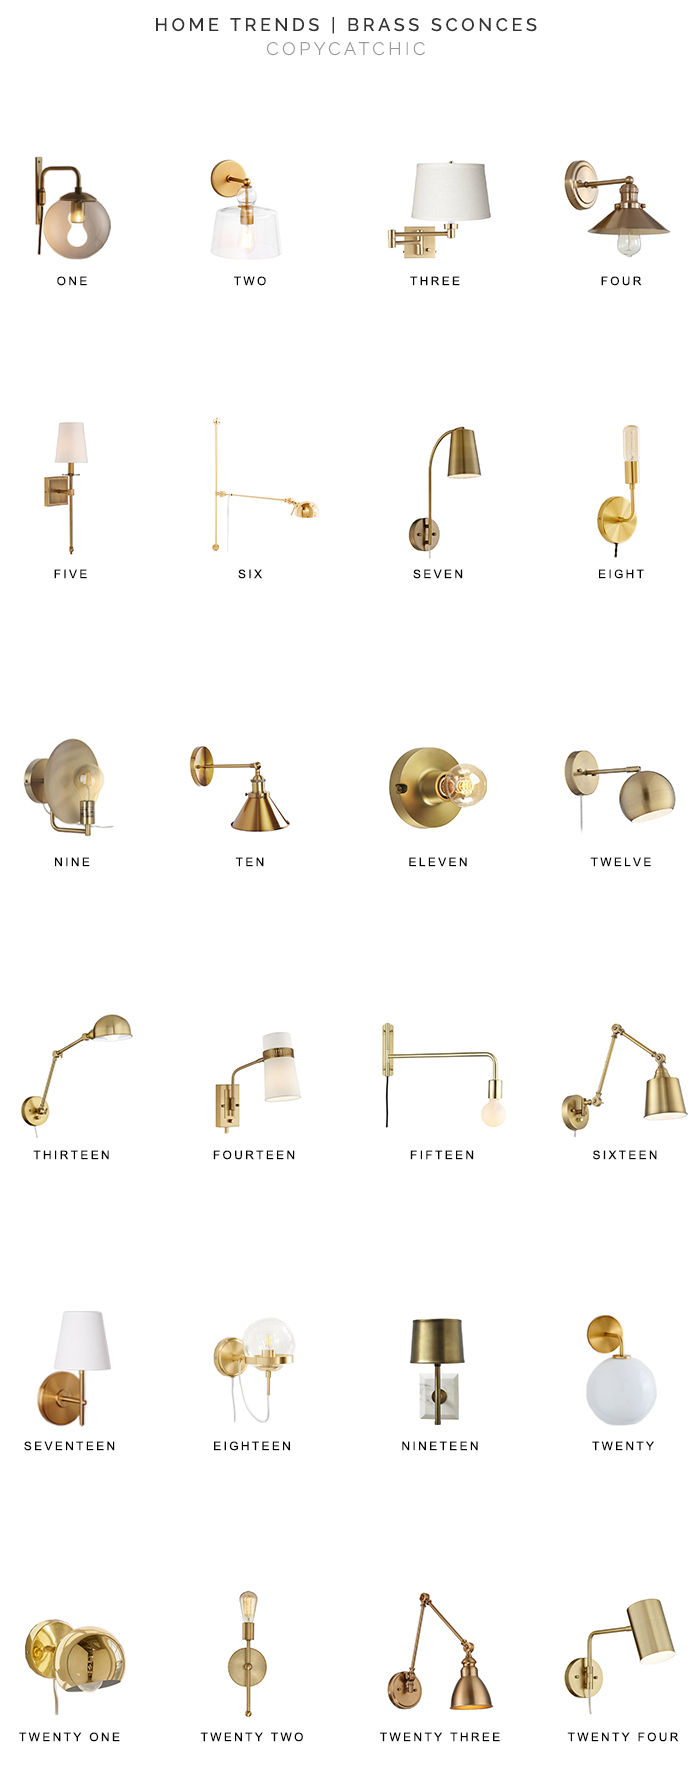 brass sconces look for less, gold sconces, brass wall lamps, gold wall lamps, copycatchic luxe living for less, budget home decor and design, daily finds, home trends, sales, budget travel and room redos